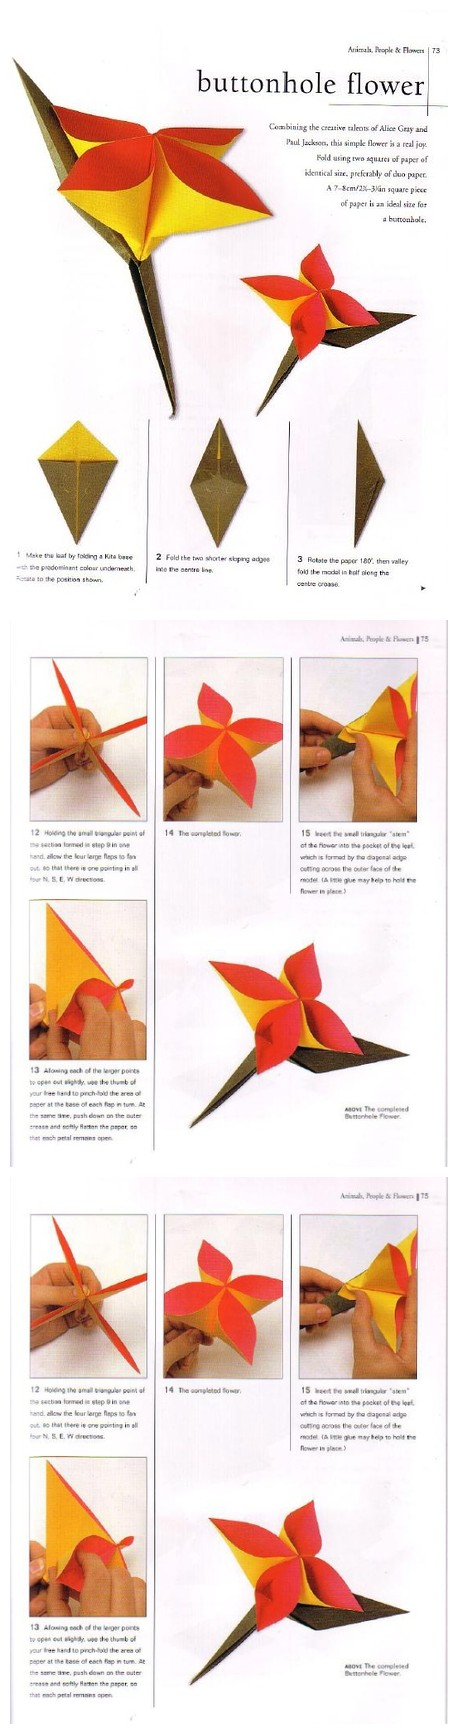 Origami Buttonhole Flower Origami Flora And Fauna Pinterest